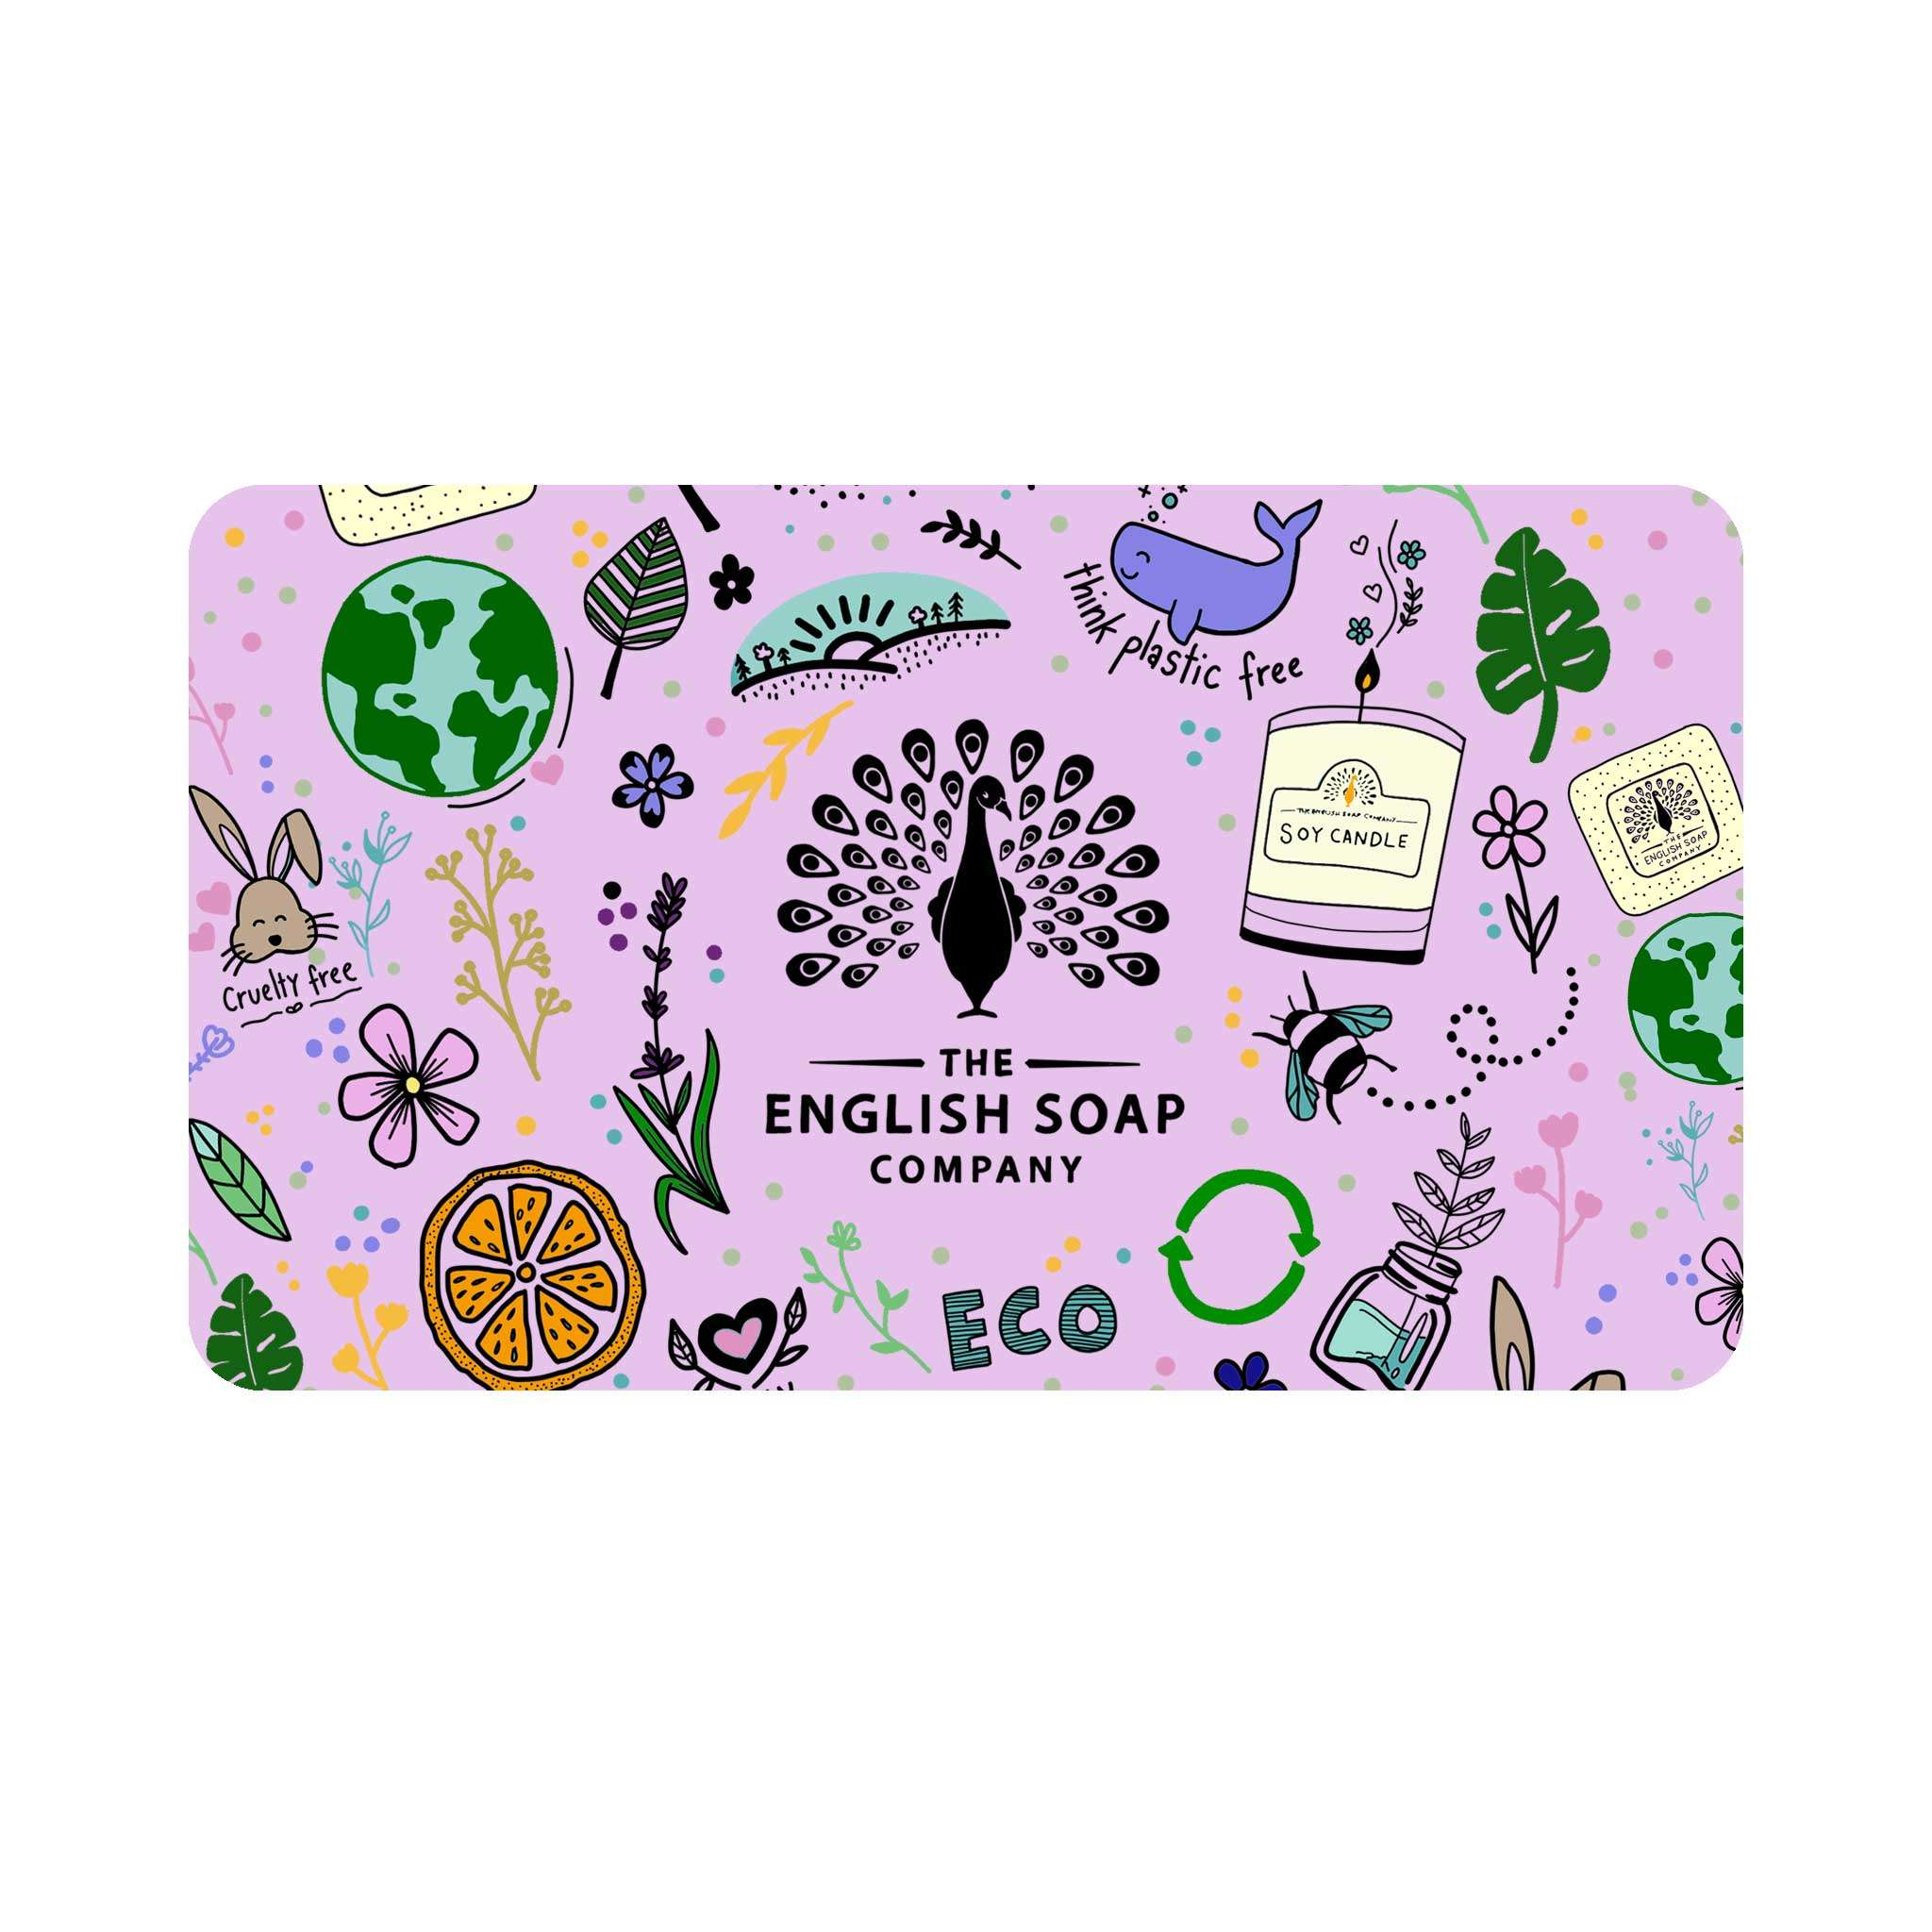 The English Soap Company Lilac Gift Card